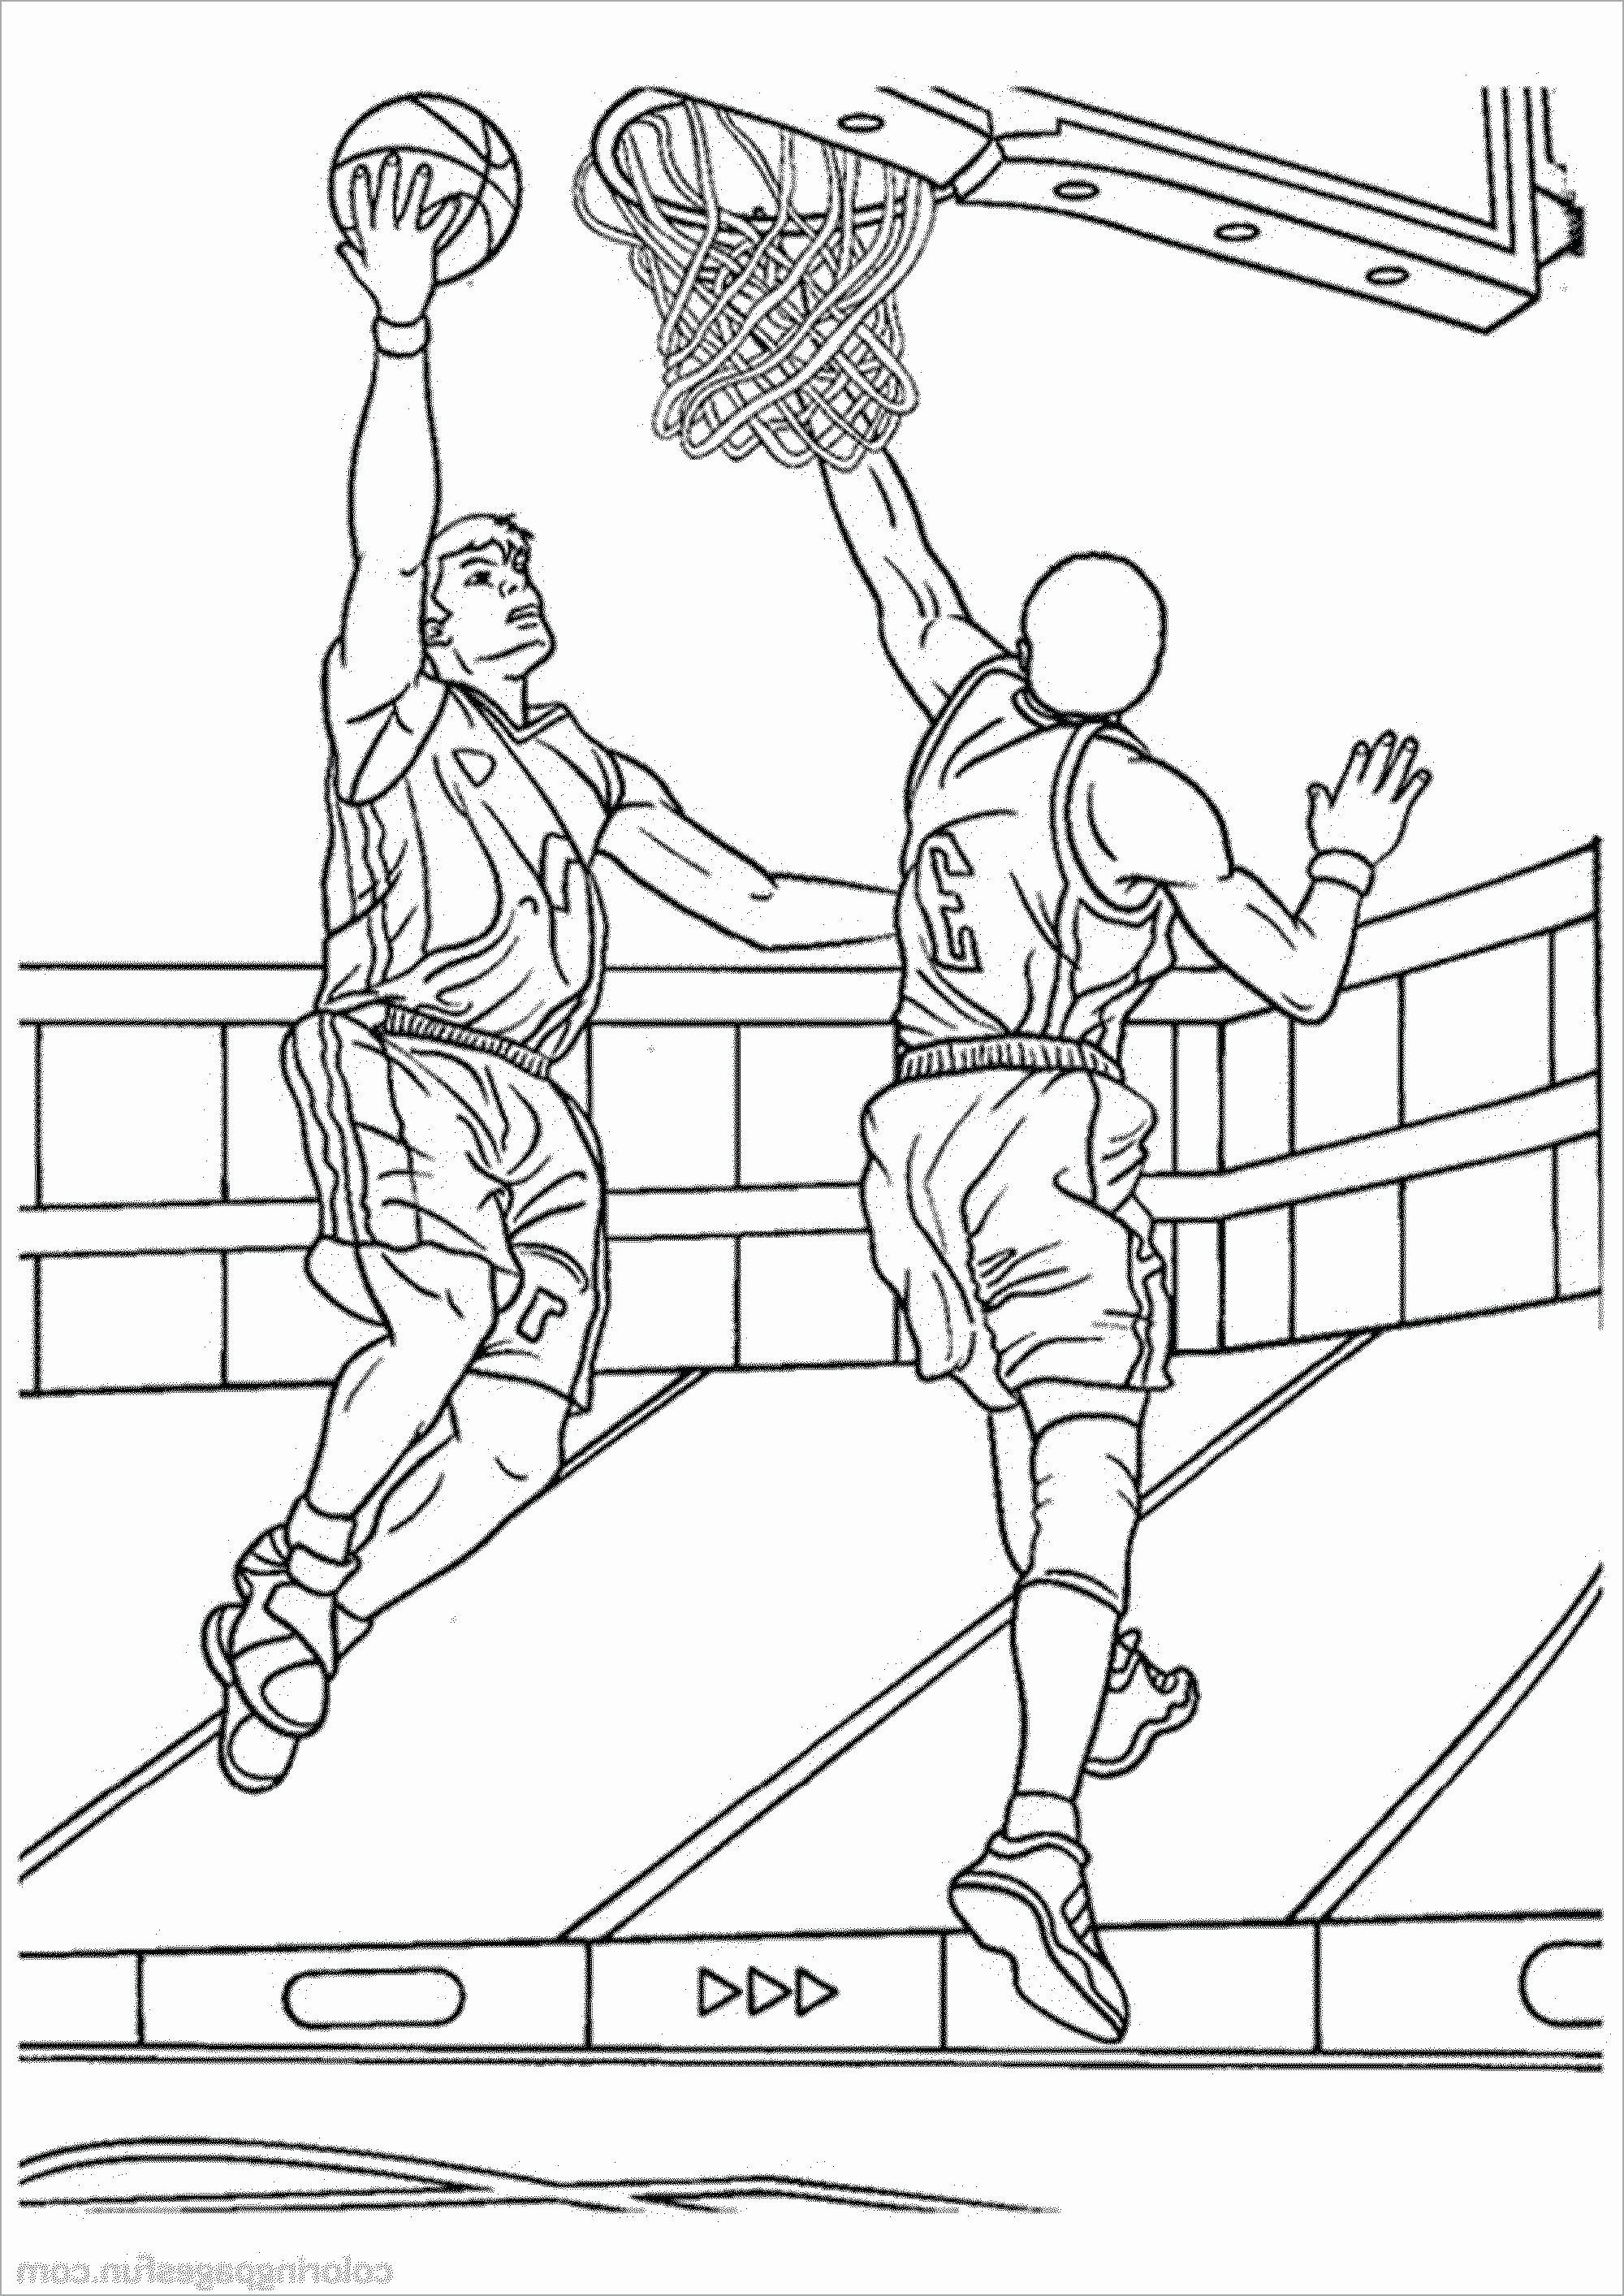 Coloring Sports Pages Inspirational Basketball Print Out